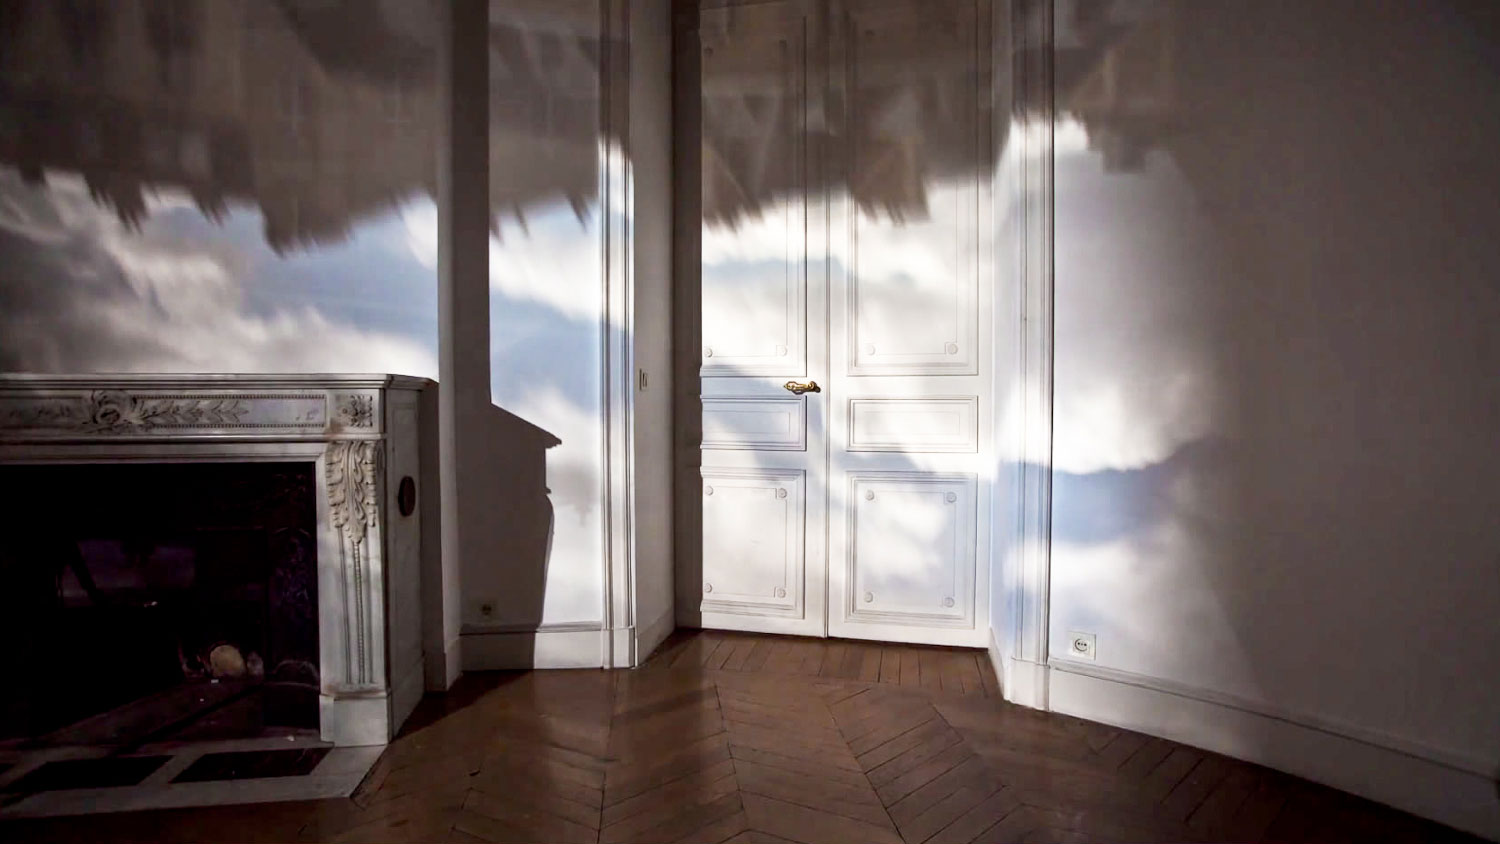 Camera Obscura Project by Romain Alary and Antoine Levi | Yellowtrace